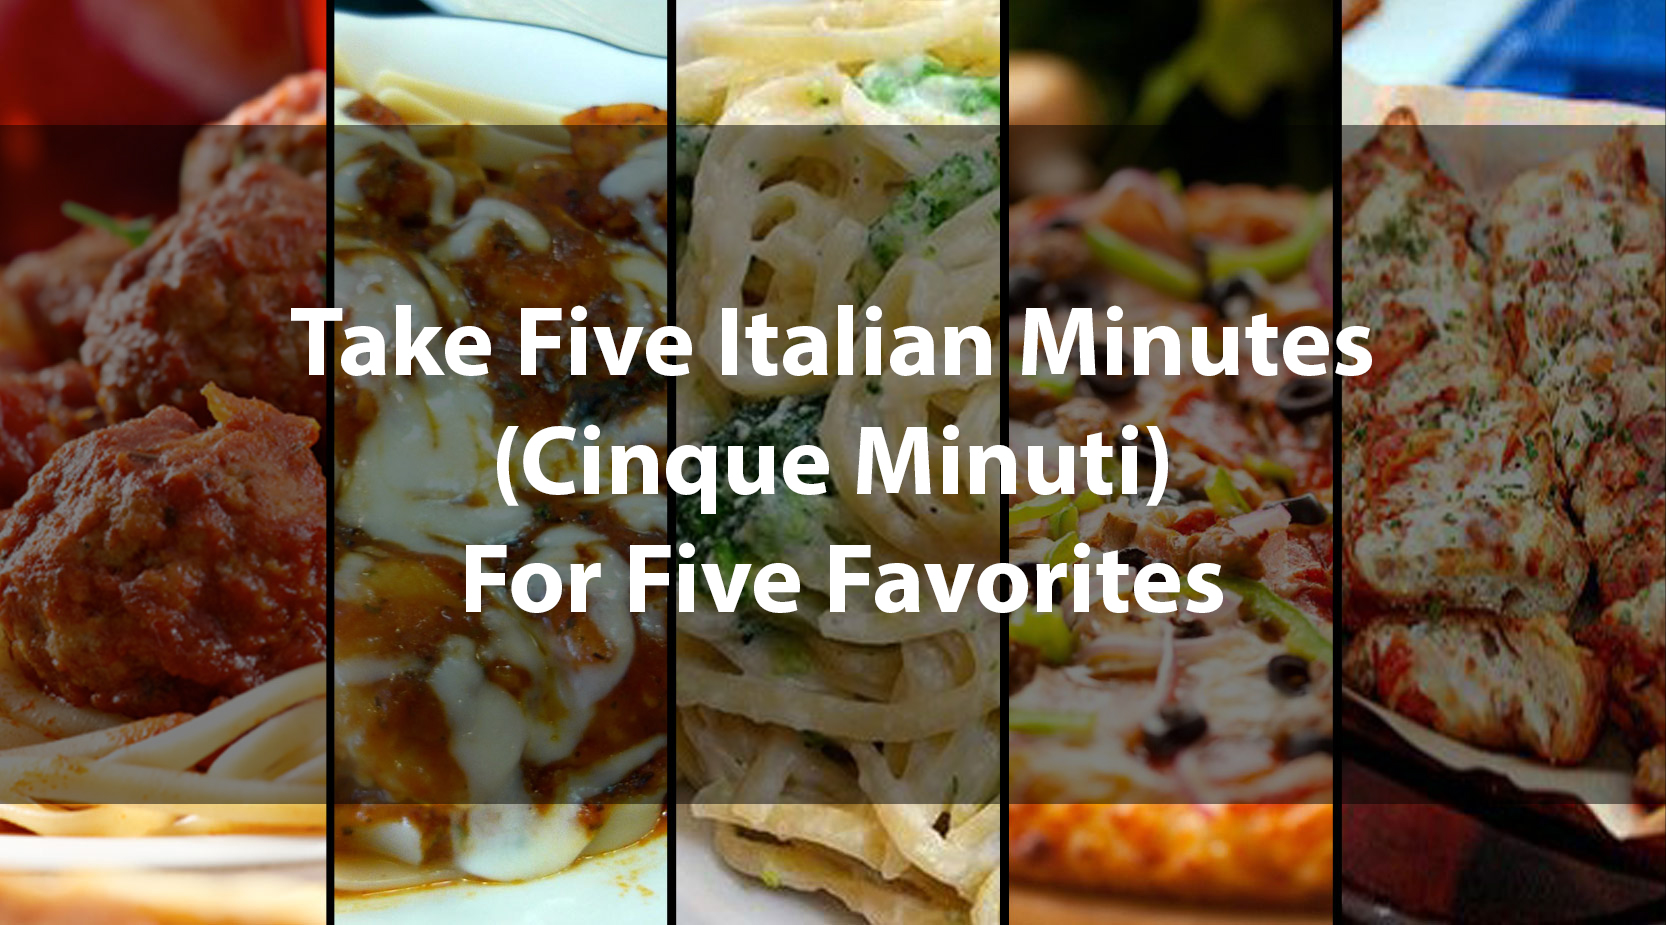 Take Five Italian Minutes (Cinque Minuti) For Five Favorites